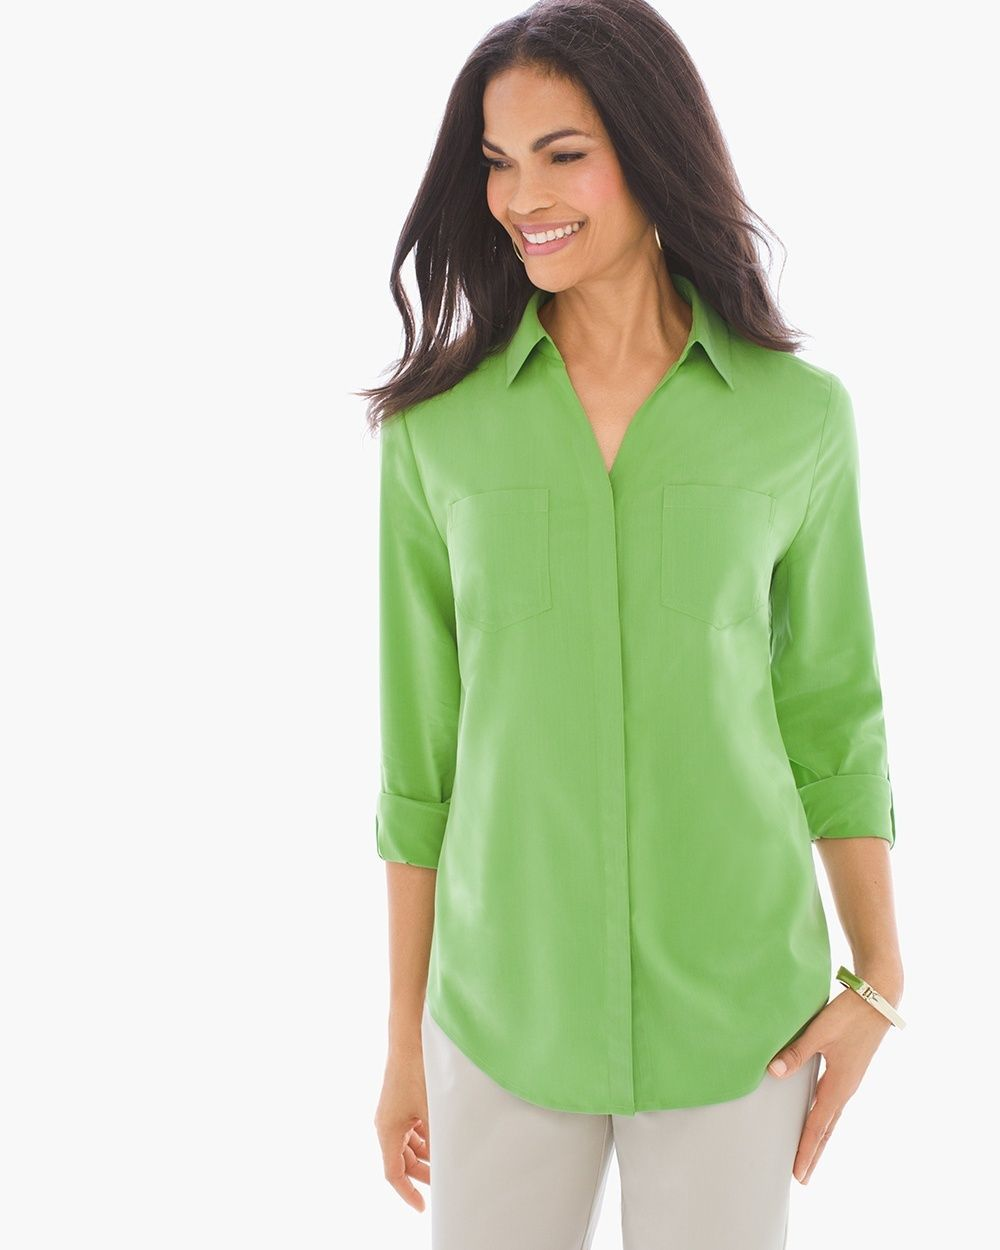 5f928d0e6 Chico s Women s Silky Soft Relaxed Shirt